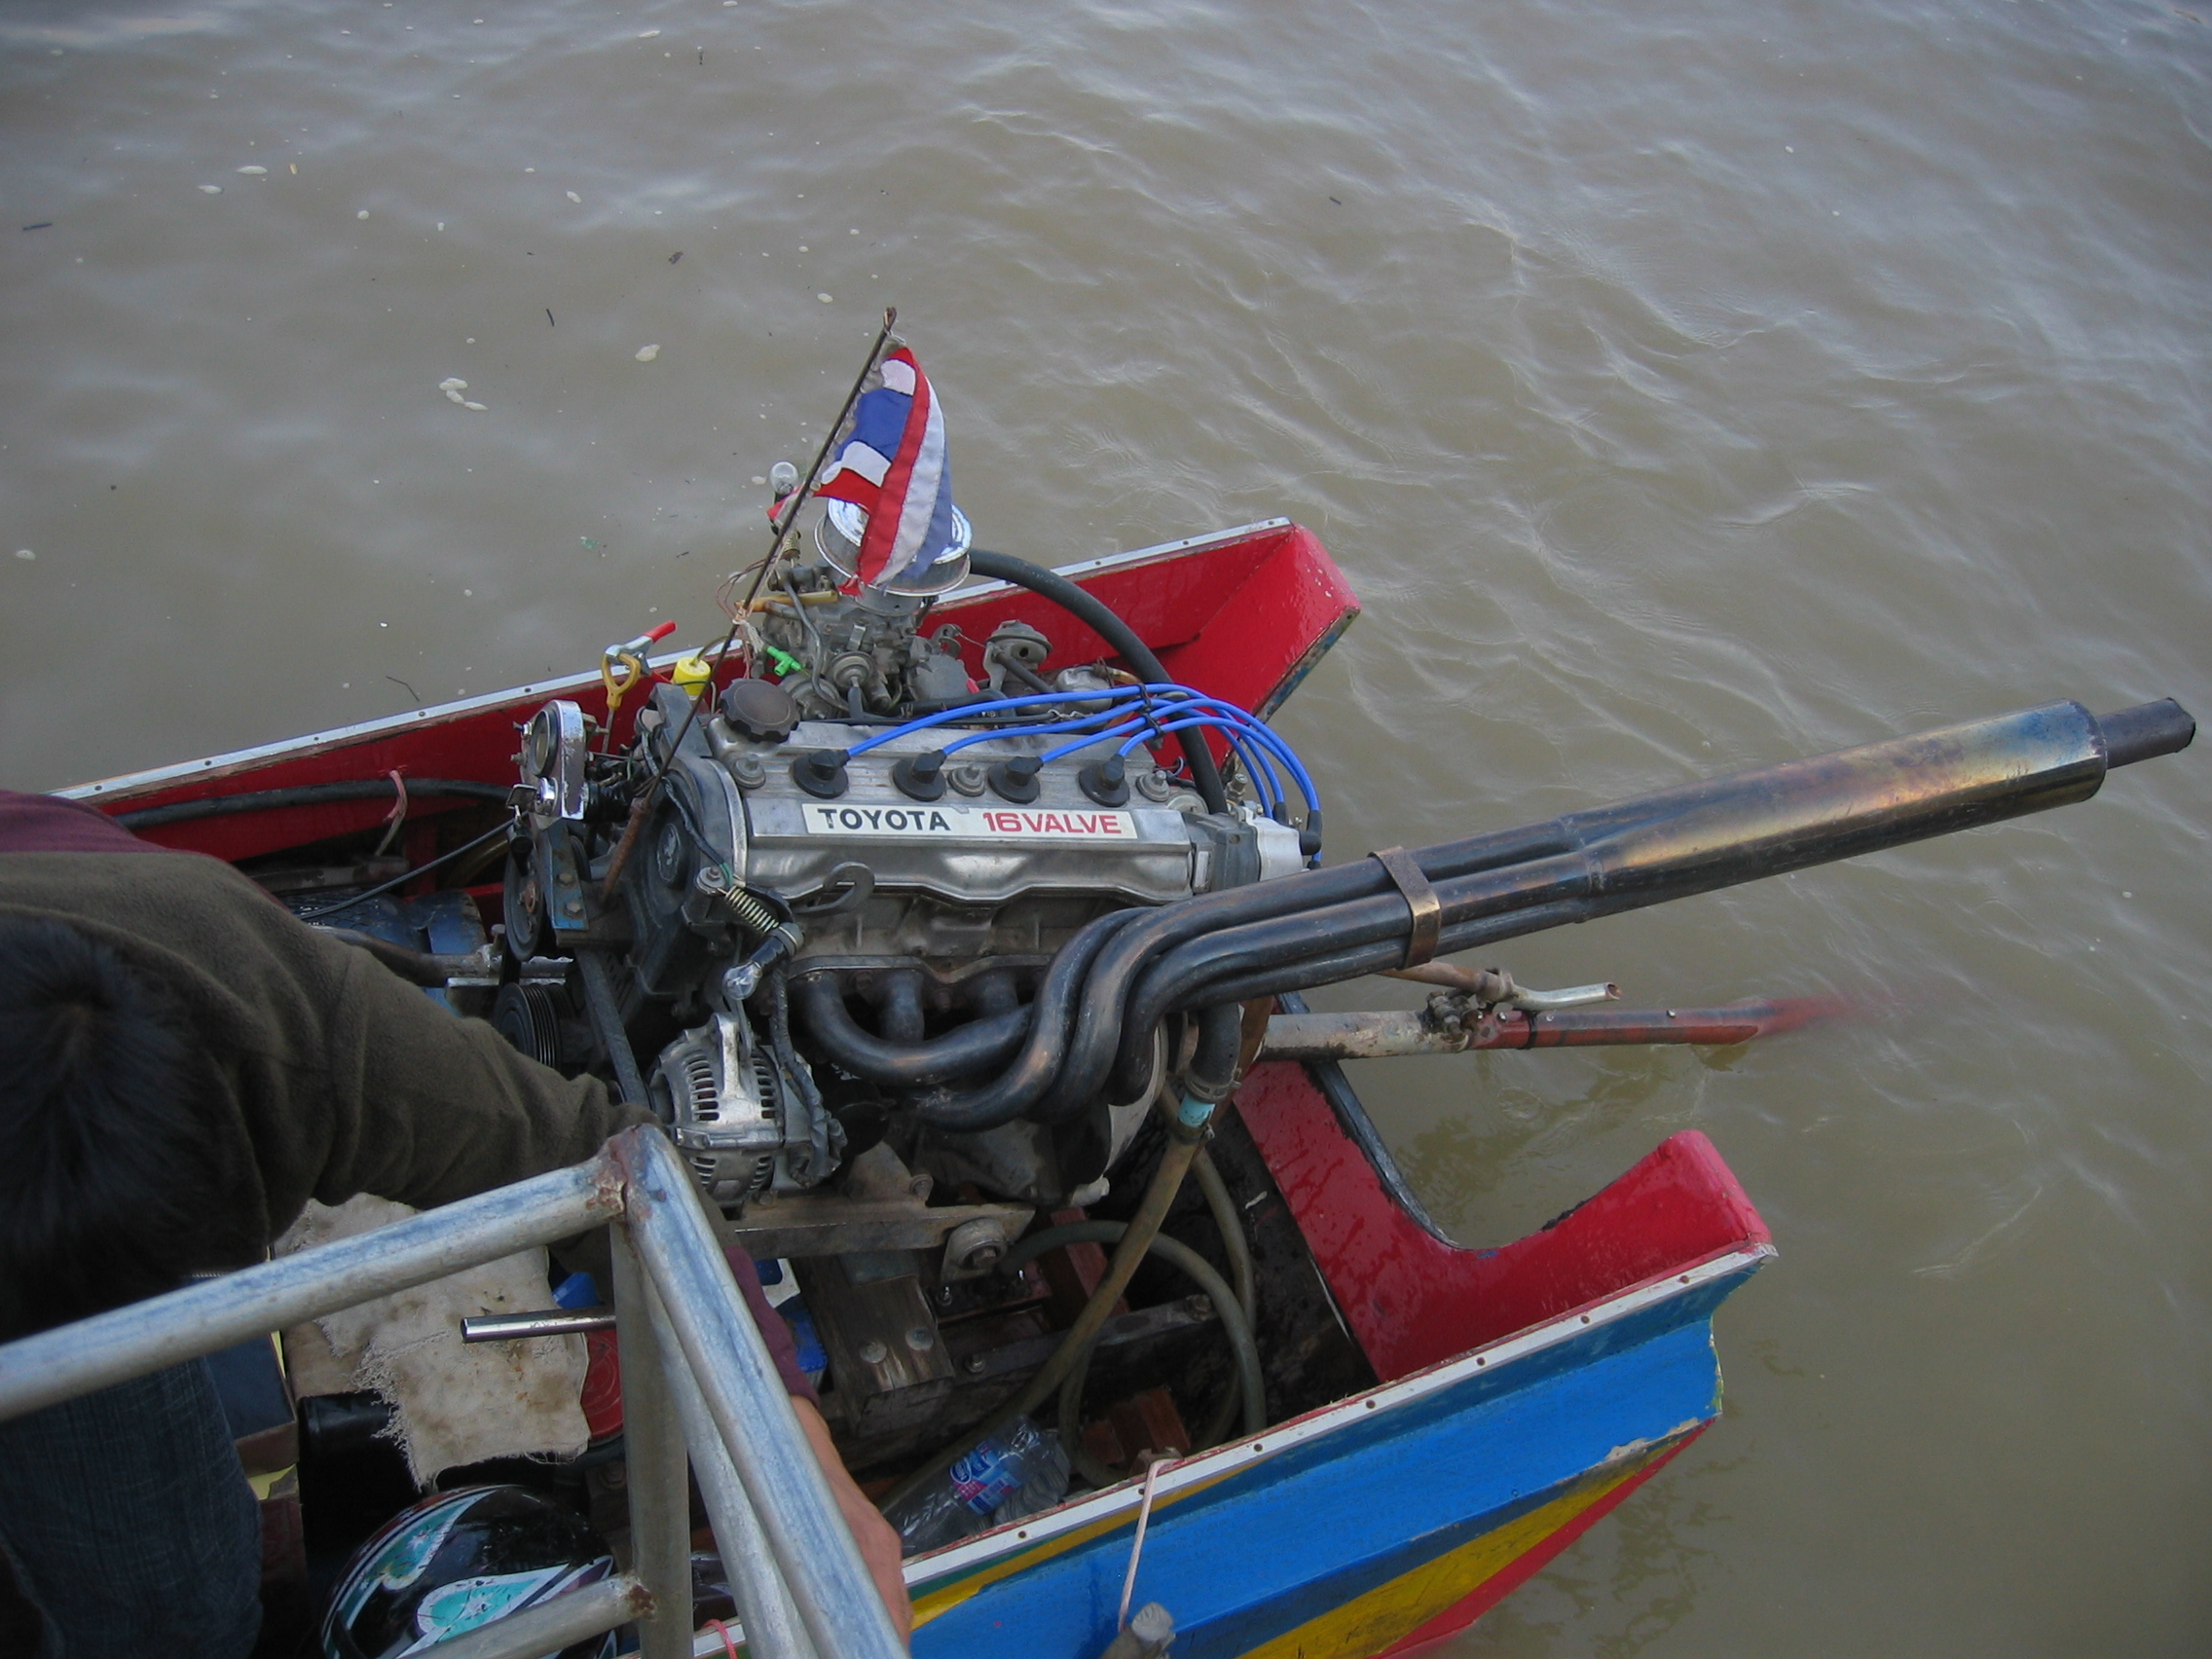 Mud Motor Plans Build Your Own Long Tail Mud Motor Or ...